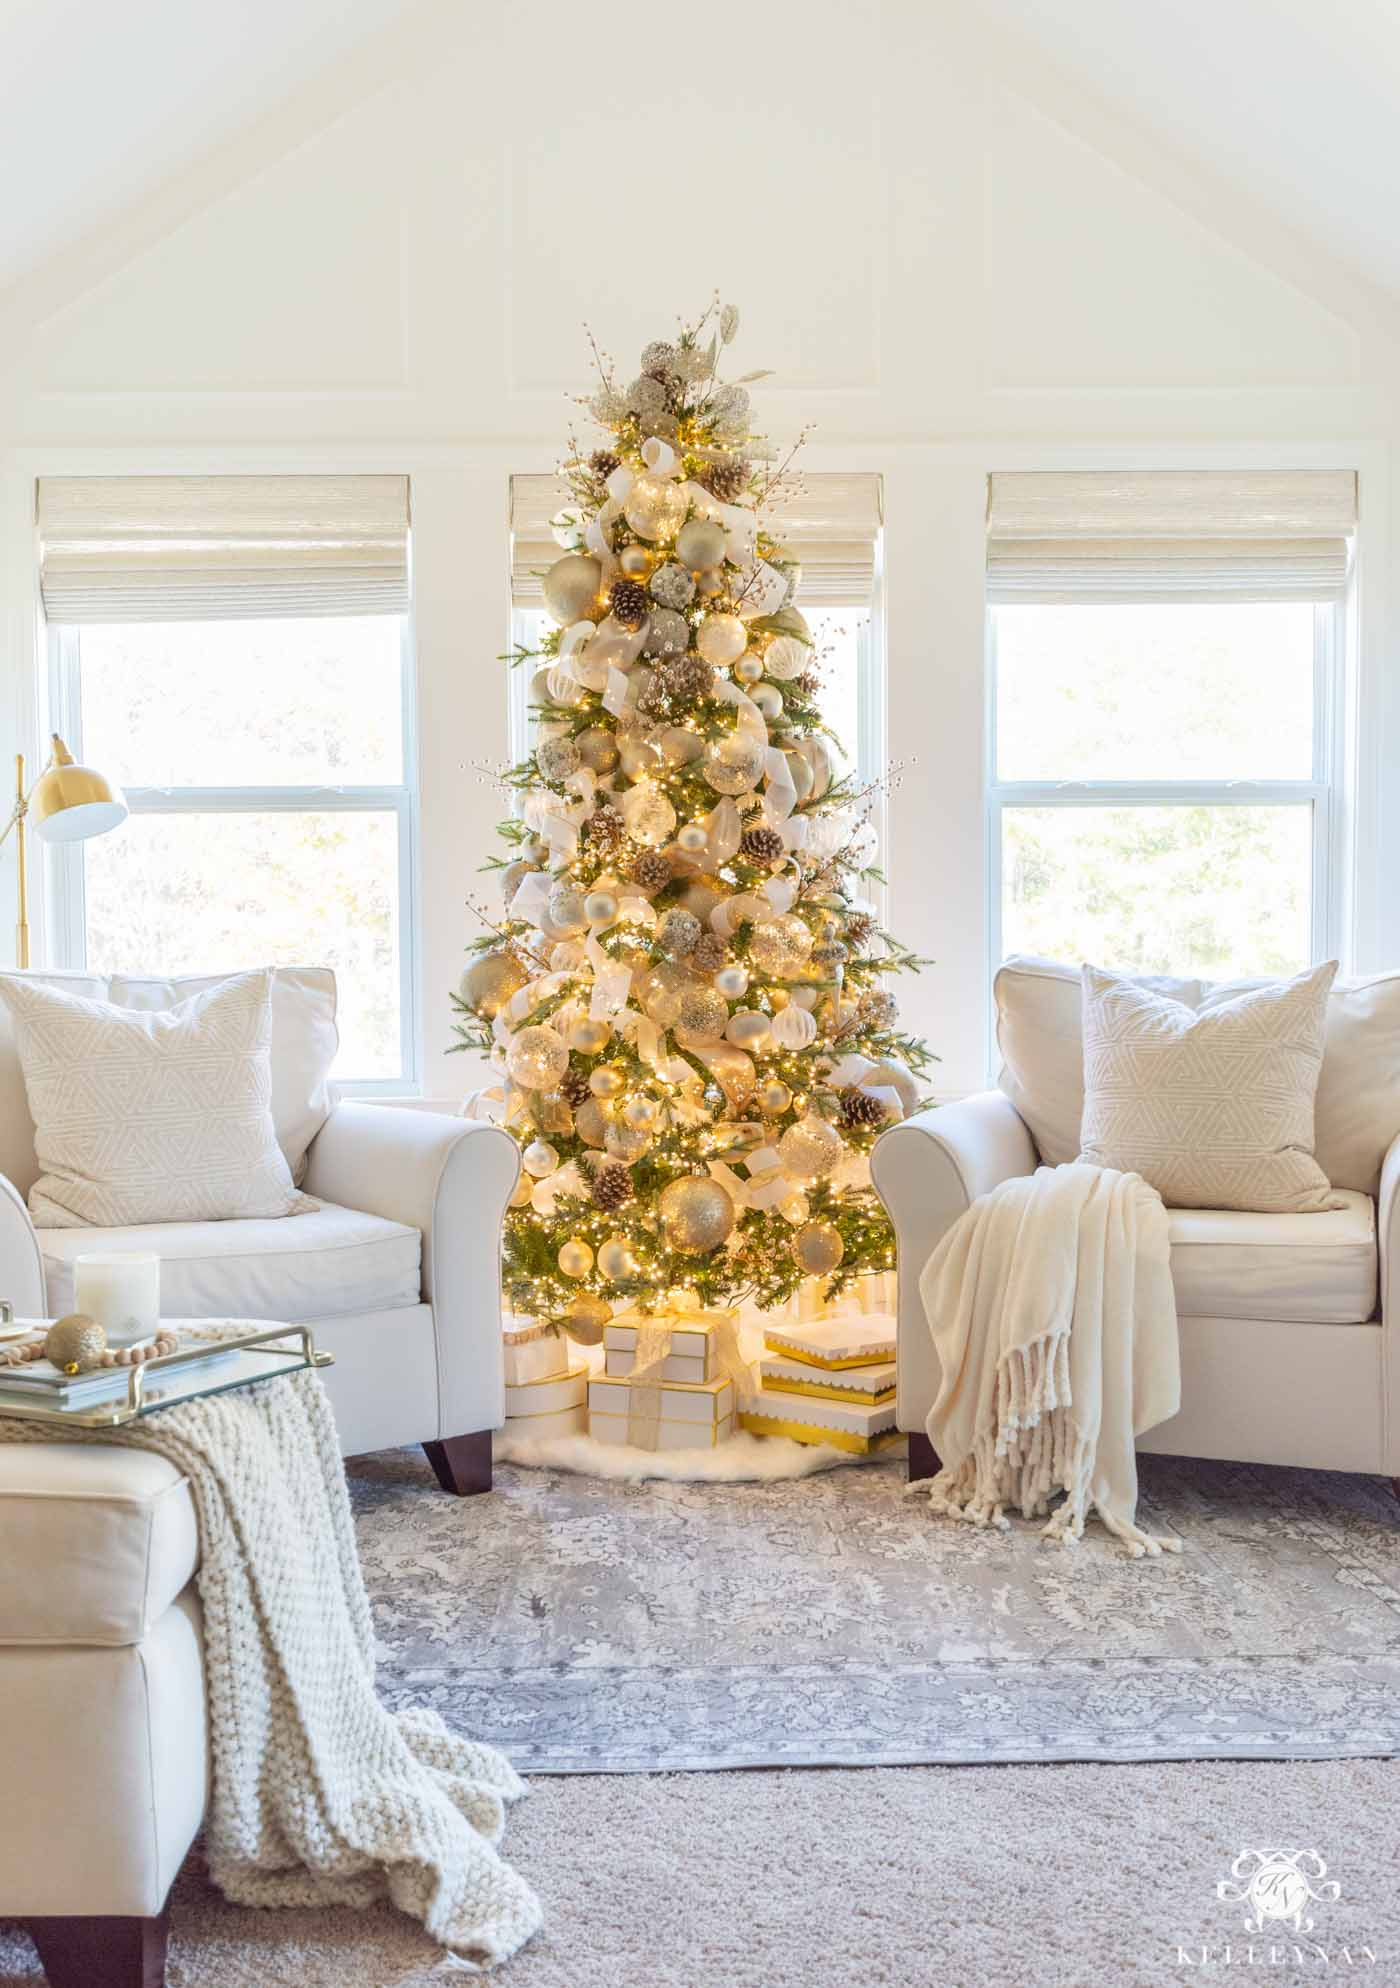 Master Bedroom Sitting Area Christmas Tree and Holiday Decor